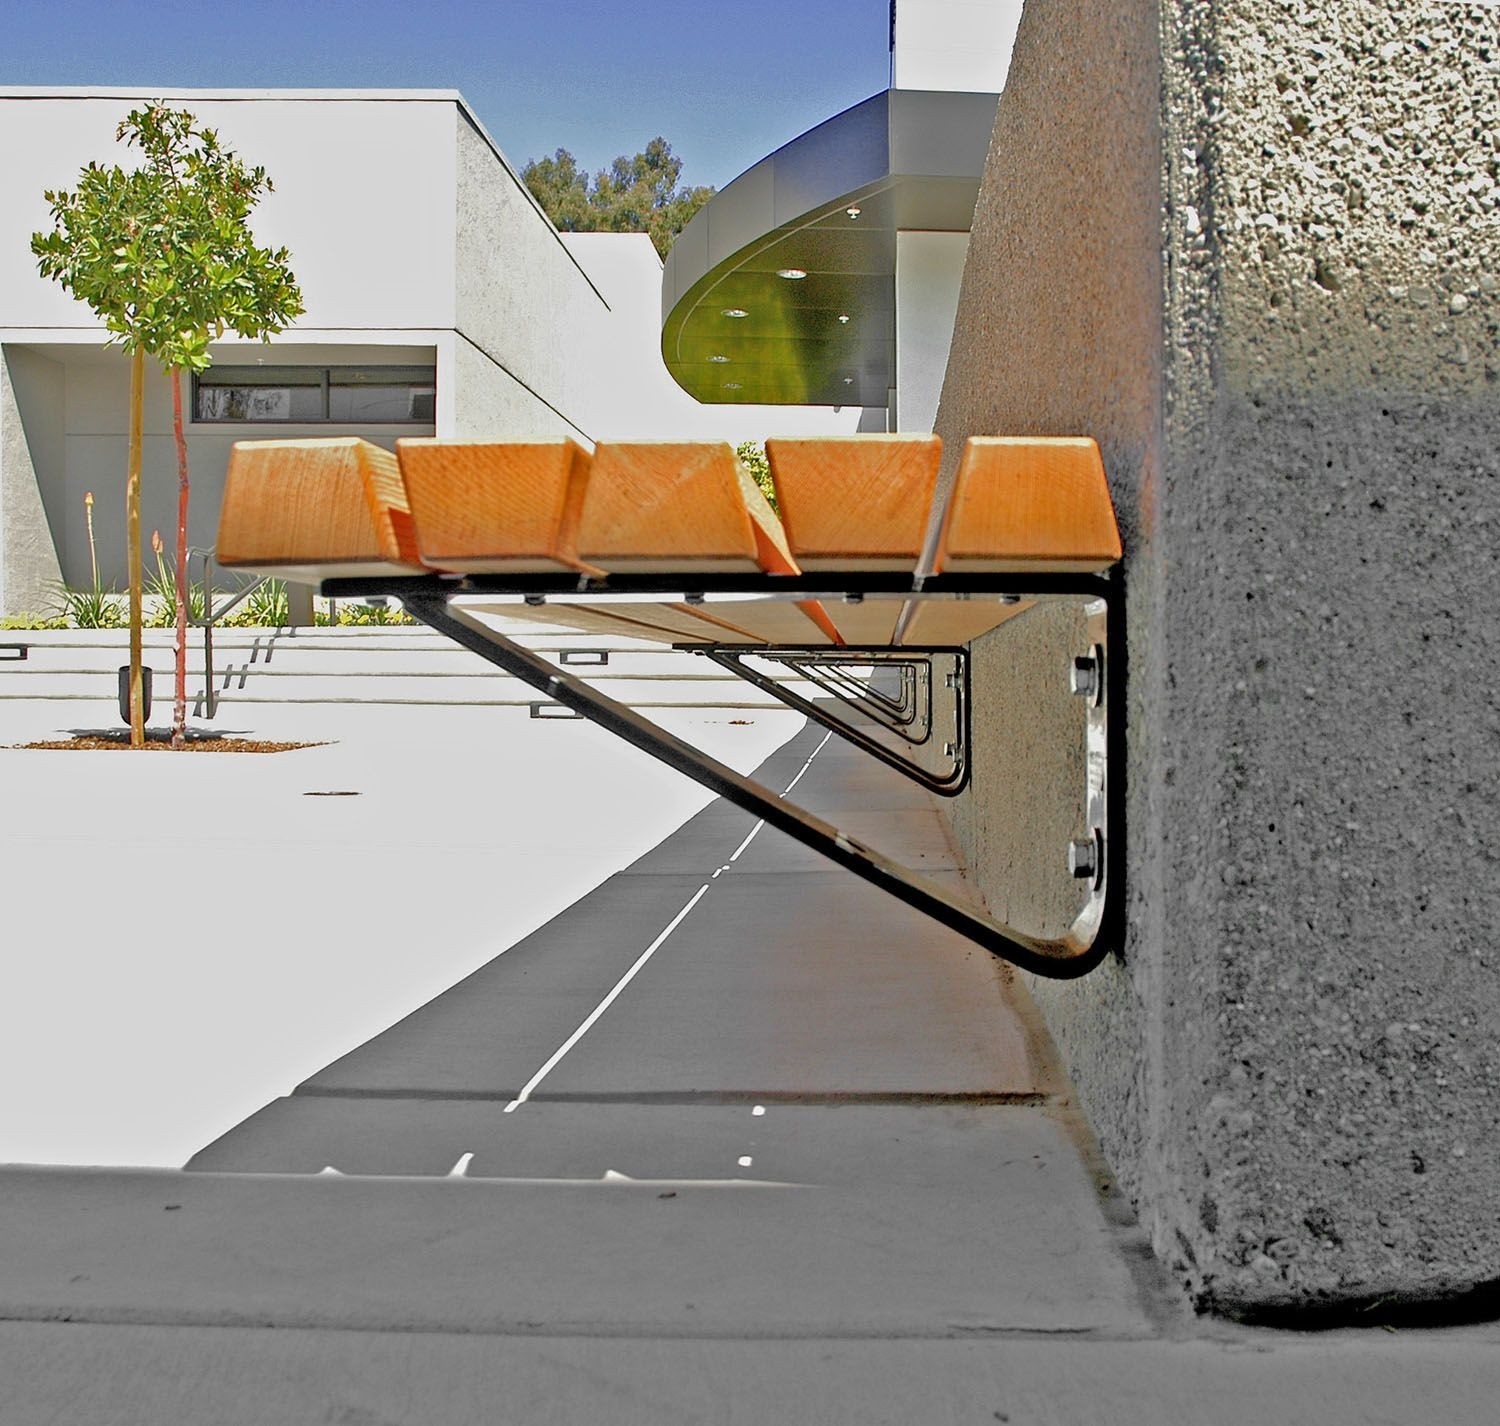 Concrete Seat Walls And Bench Seat Wall Design Wall Top Mounting Specify 2145 Bench Concrete Design In 2020 Wall Seating Outdoor Bench Seating Garden Seating